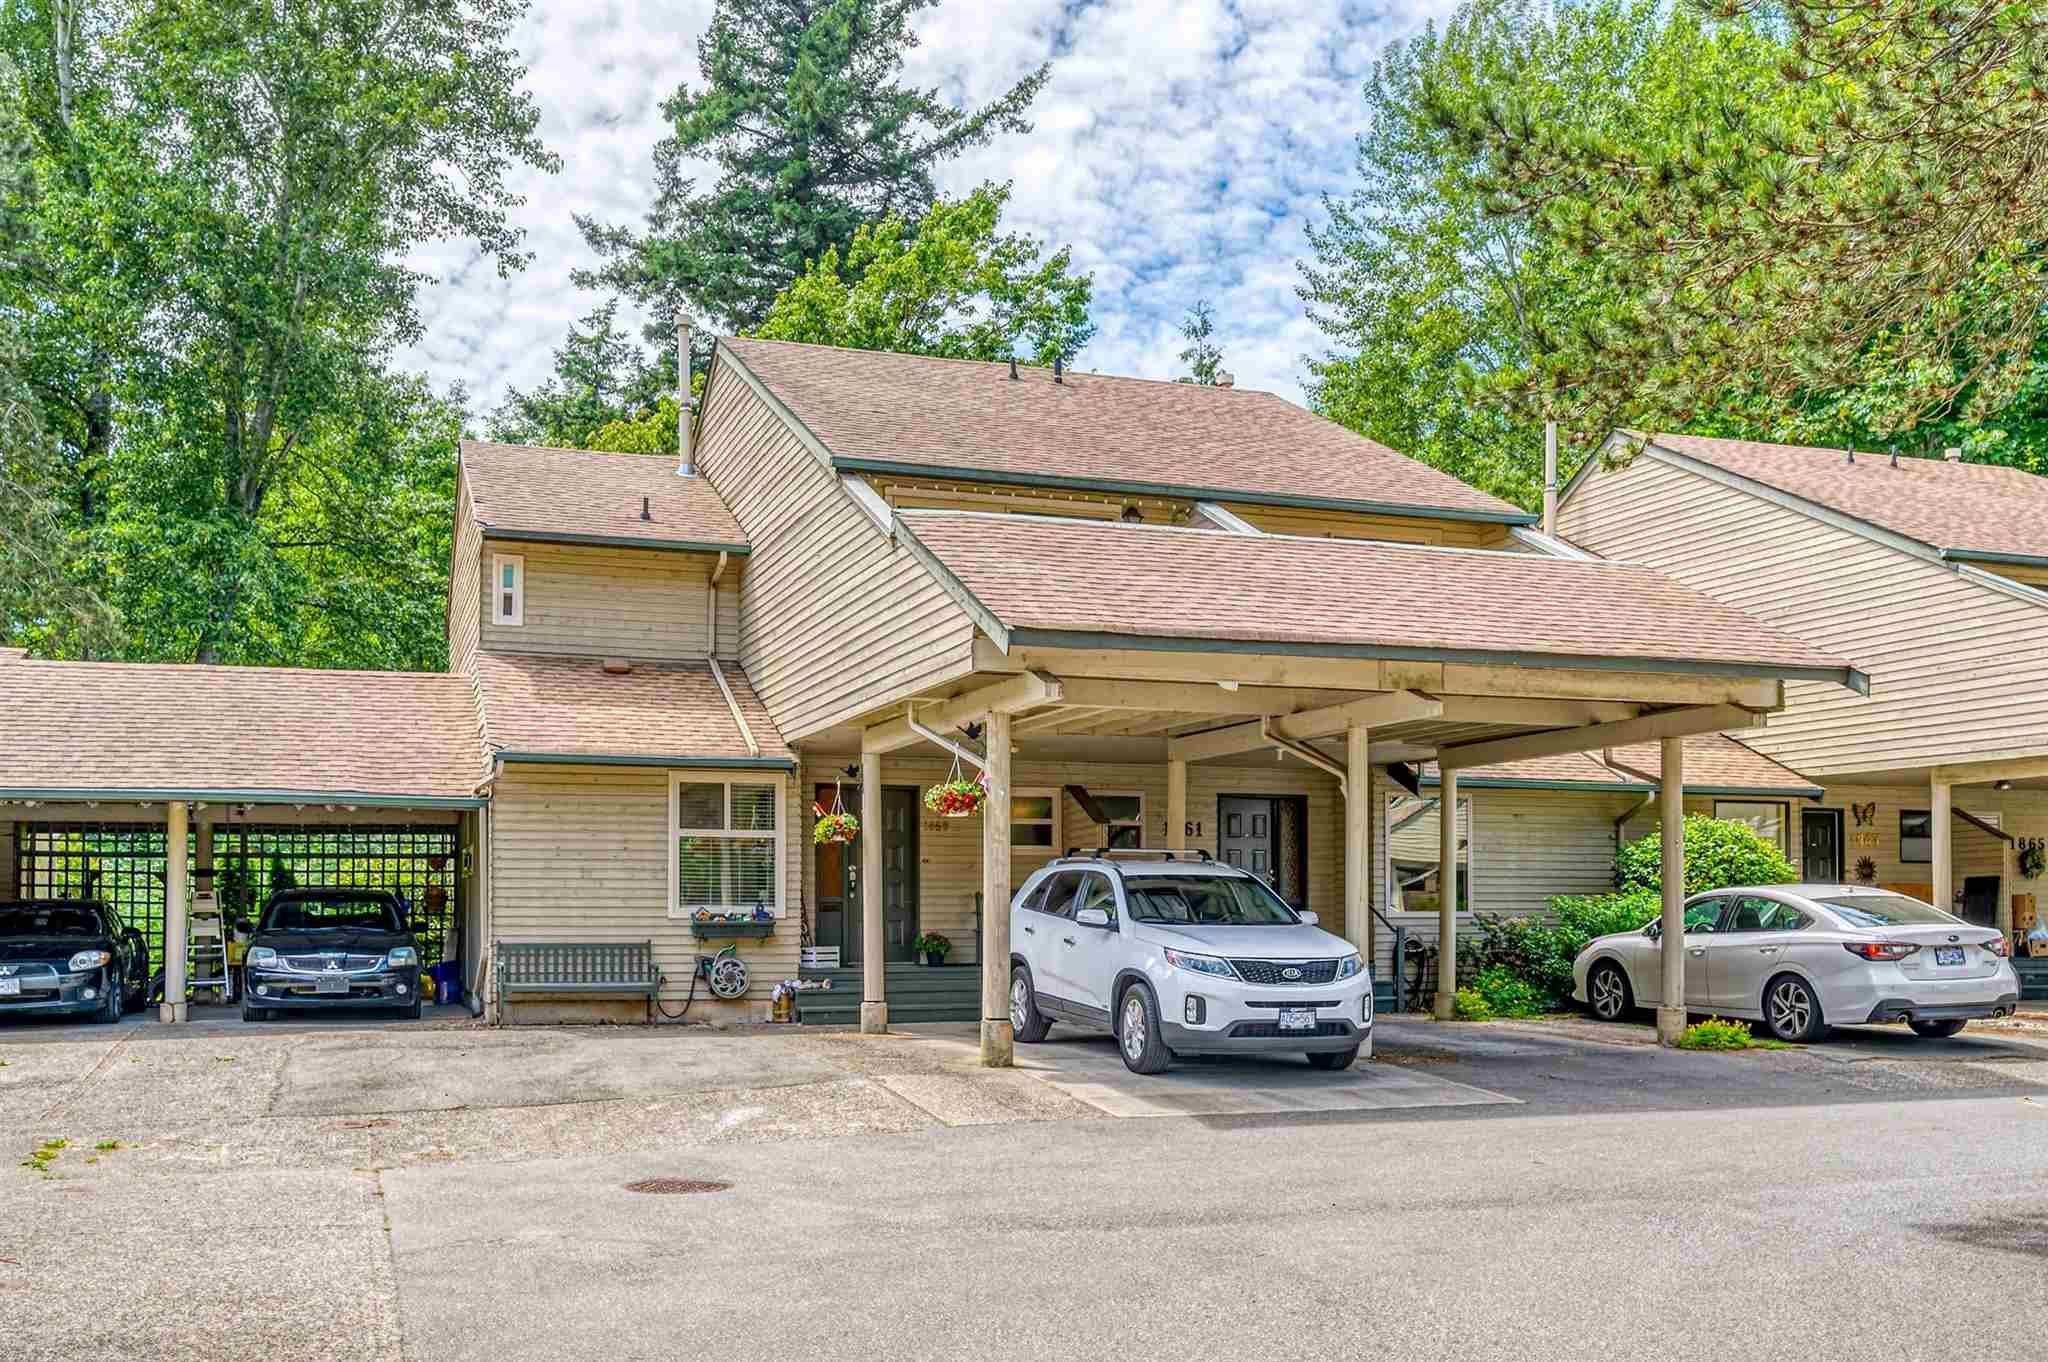 """Main Photo: 1859 LILAC Drive in Surrey: King George Corridor Townhouse for sale in """"ALDERWOOD"""" (South Surrey White Rock)  : MLS®# R2596263"""